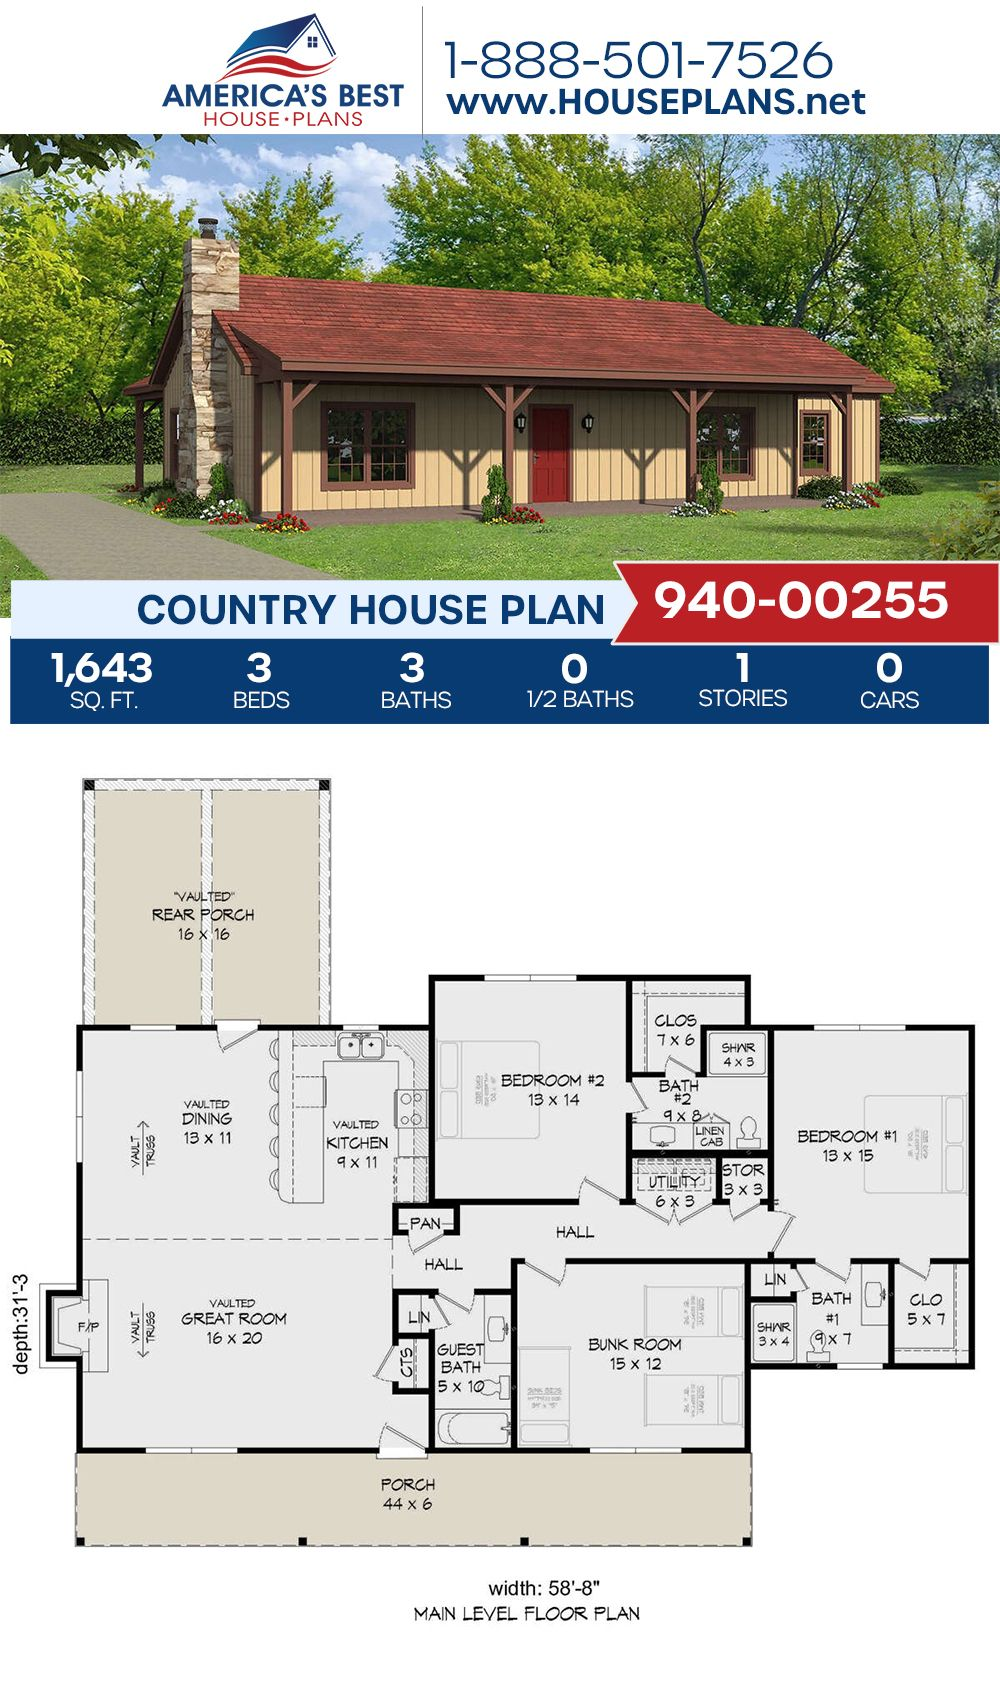 House Plan 940 00255 Country Plan 1 643 Square Feet 3 Bedrooms 3 Bathrooms Country House Plans Country House Design House Plans